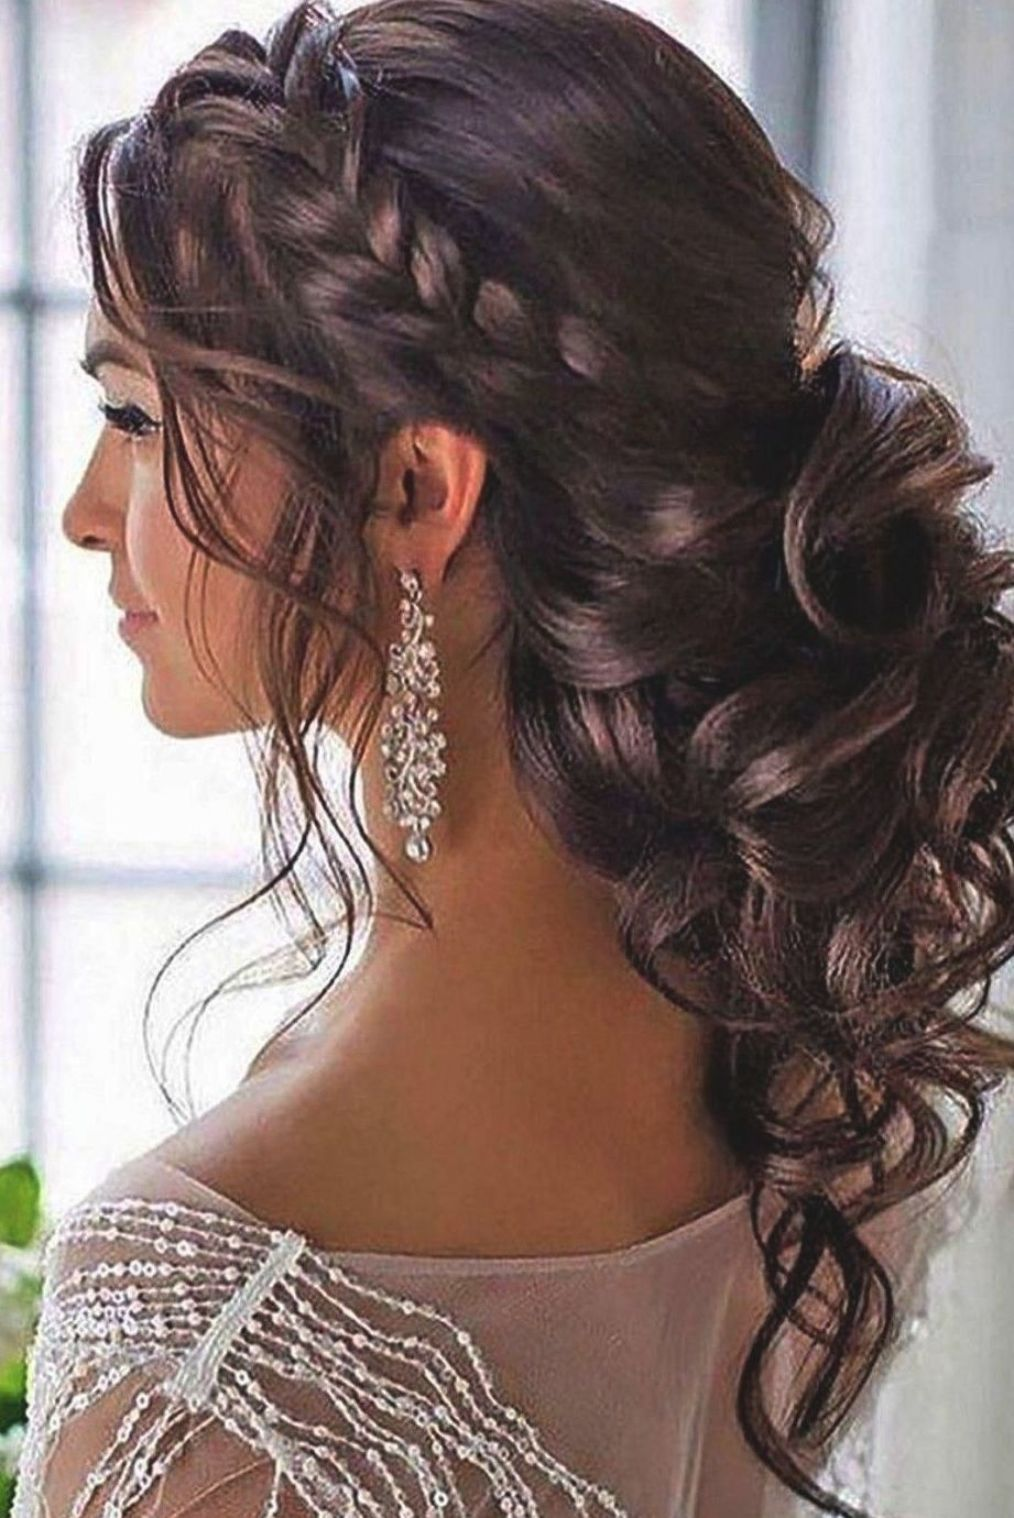 25 Amazing Quinceanera Hairstyles 014 Hairstyle Ideas Simple Quinceanera Hairstyles For Your Style Thr Simple Wedding Hairstyles Quince Hairstyles Hair Styles